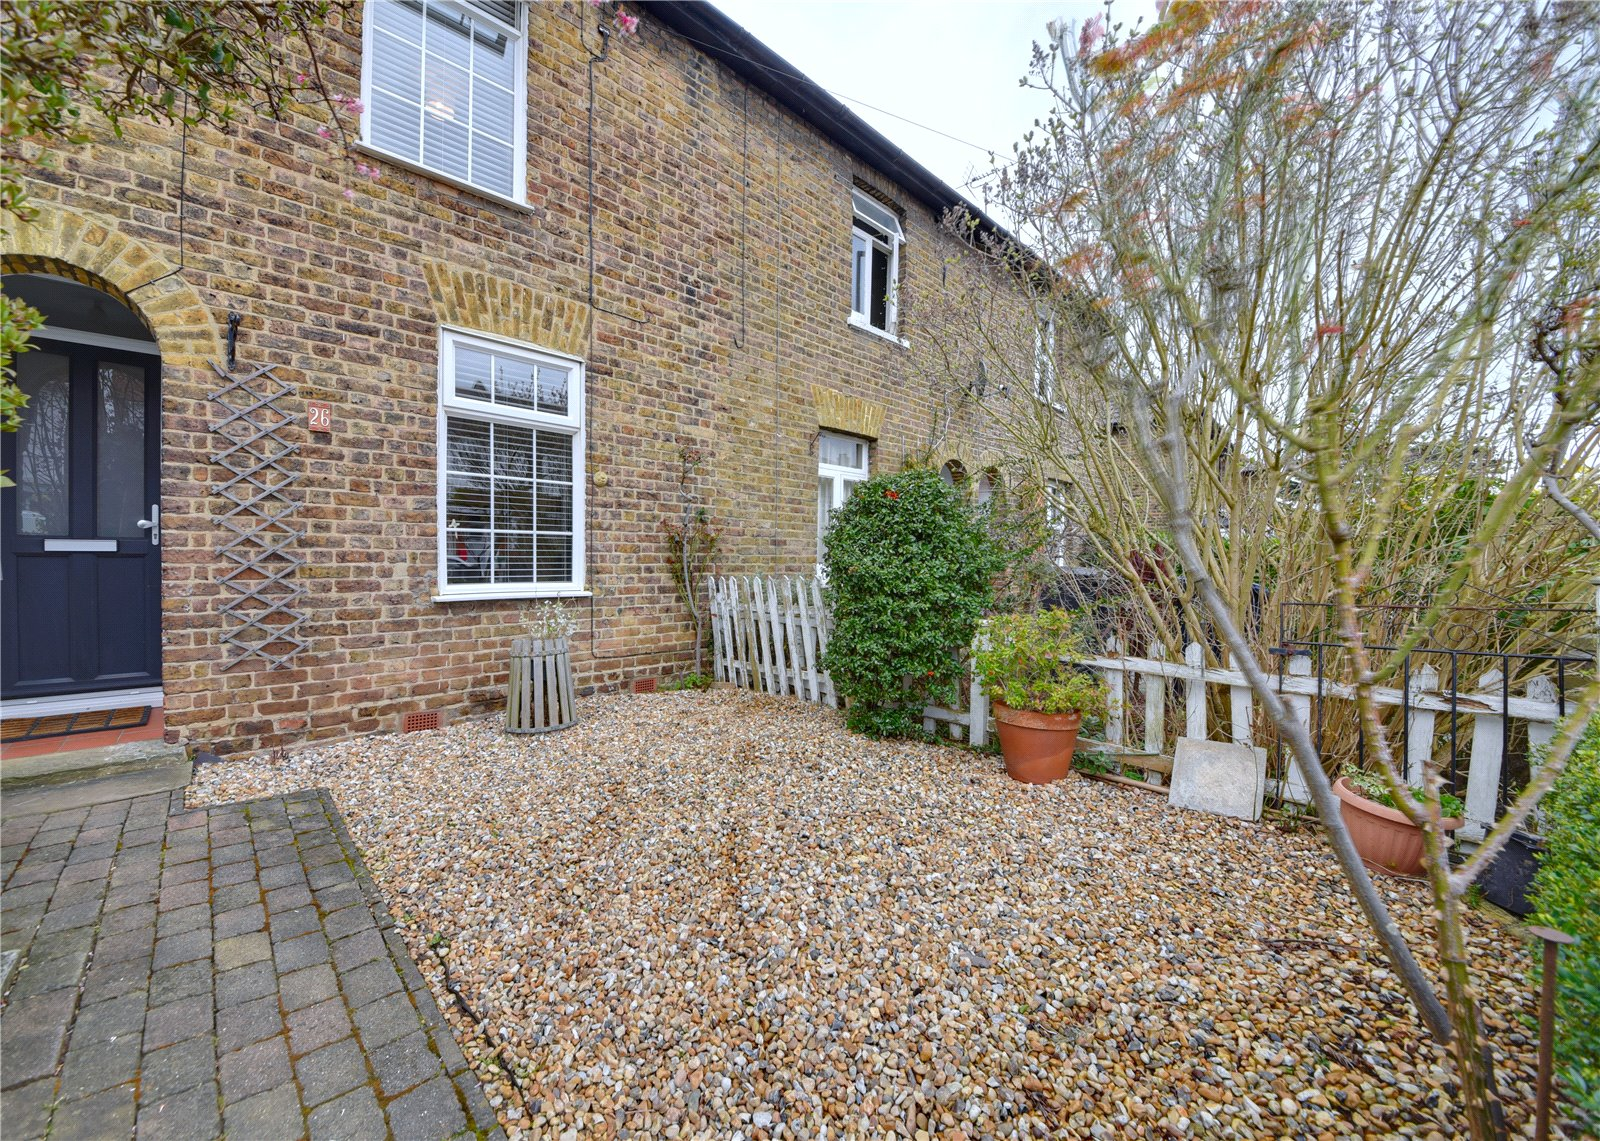 2 bed house for sale in London, N12 9JN  - Property Image 10